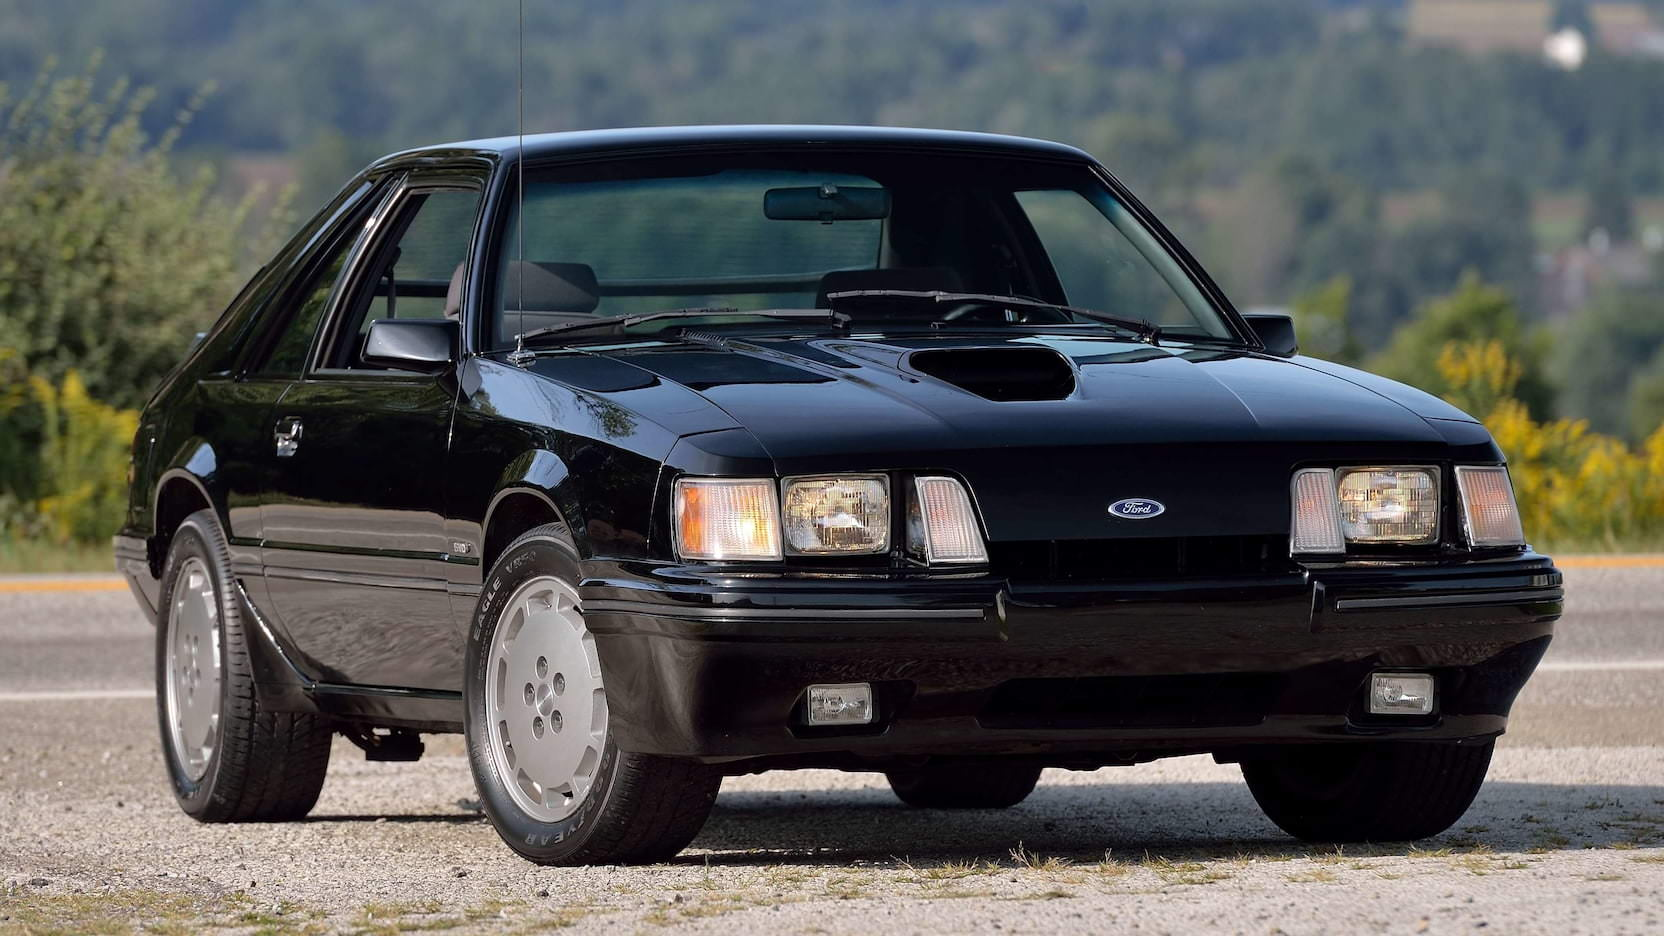 The Ford Mustang SVO – A Factory-Turbocharged 1980s Foxbody